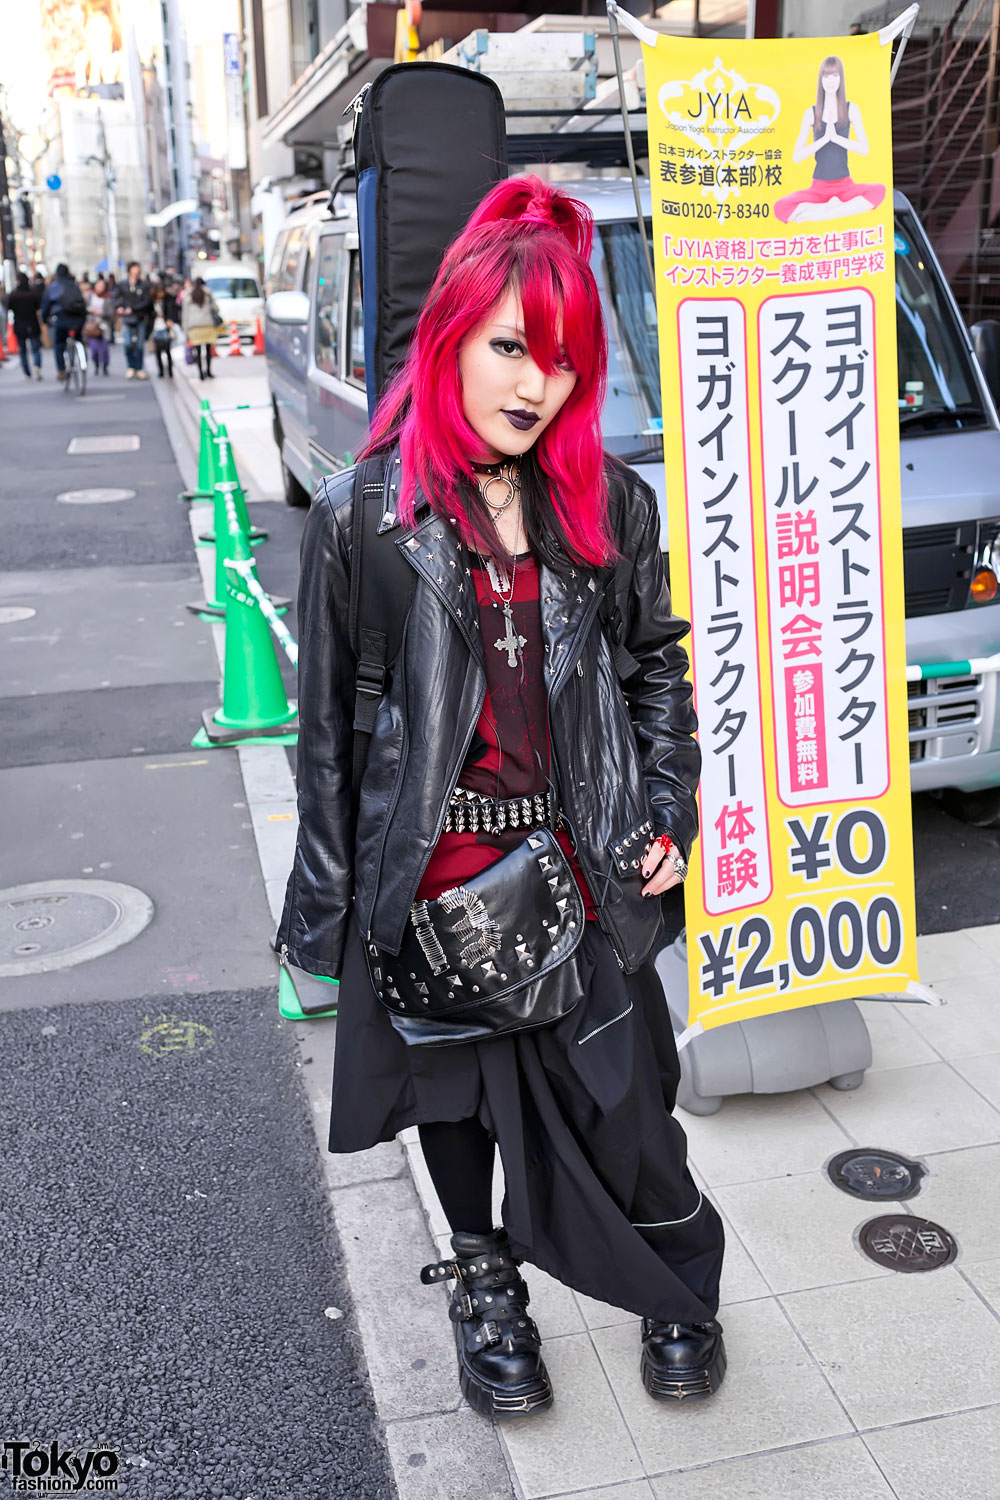 Punk Clothing Styles For Girls Punk-style Harajuku Girl in